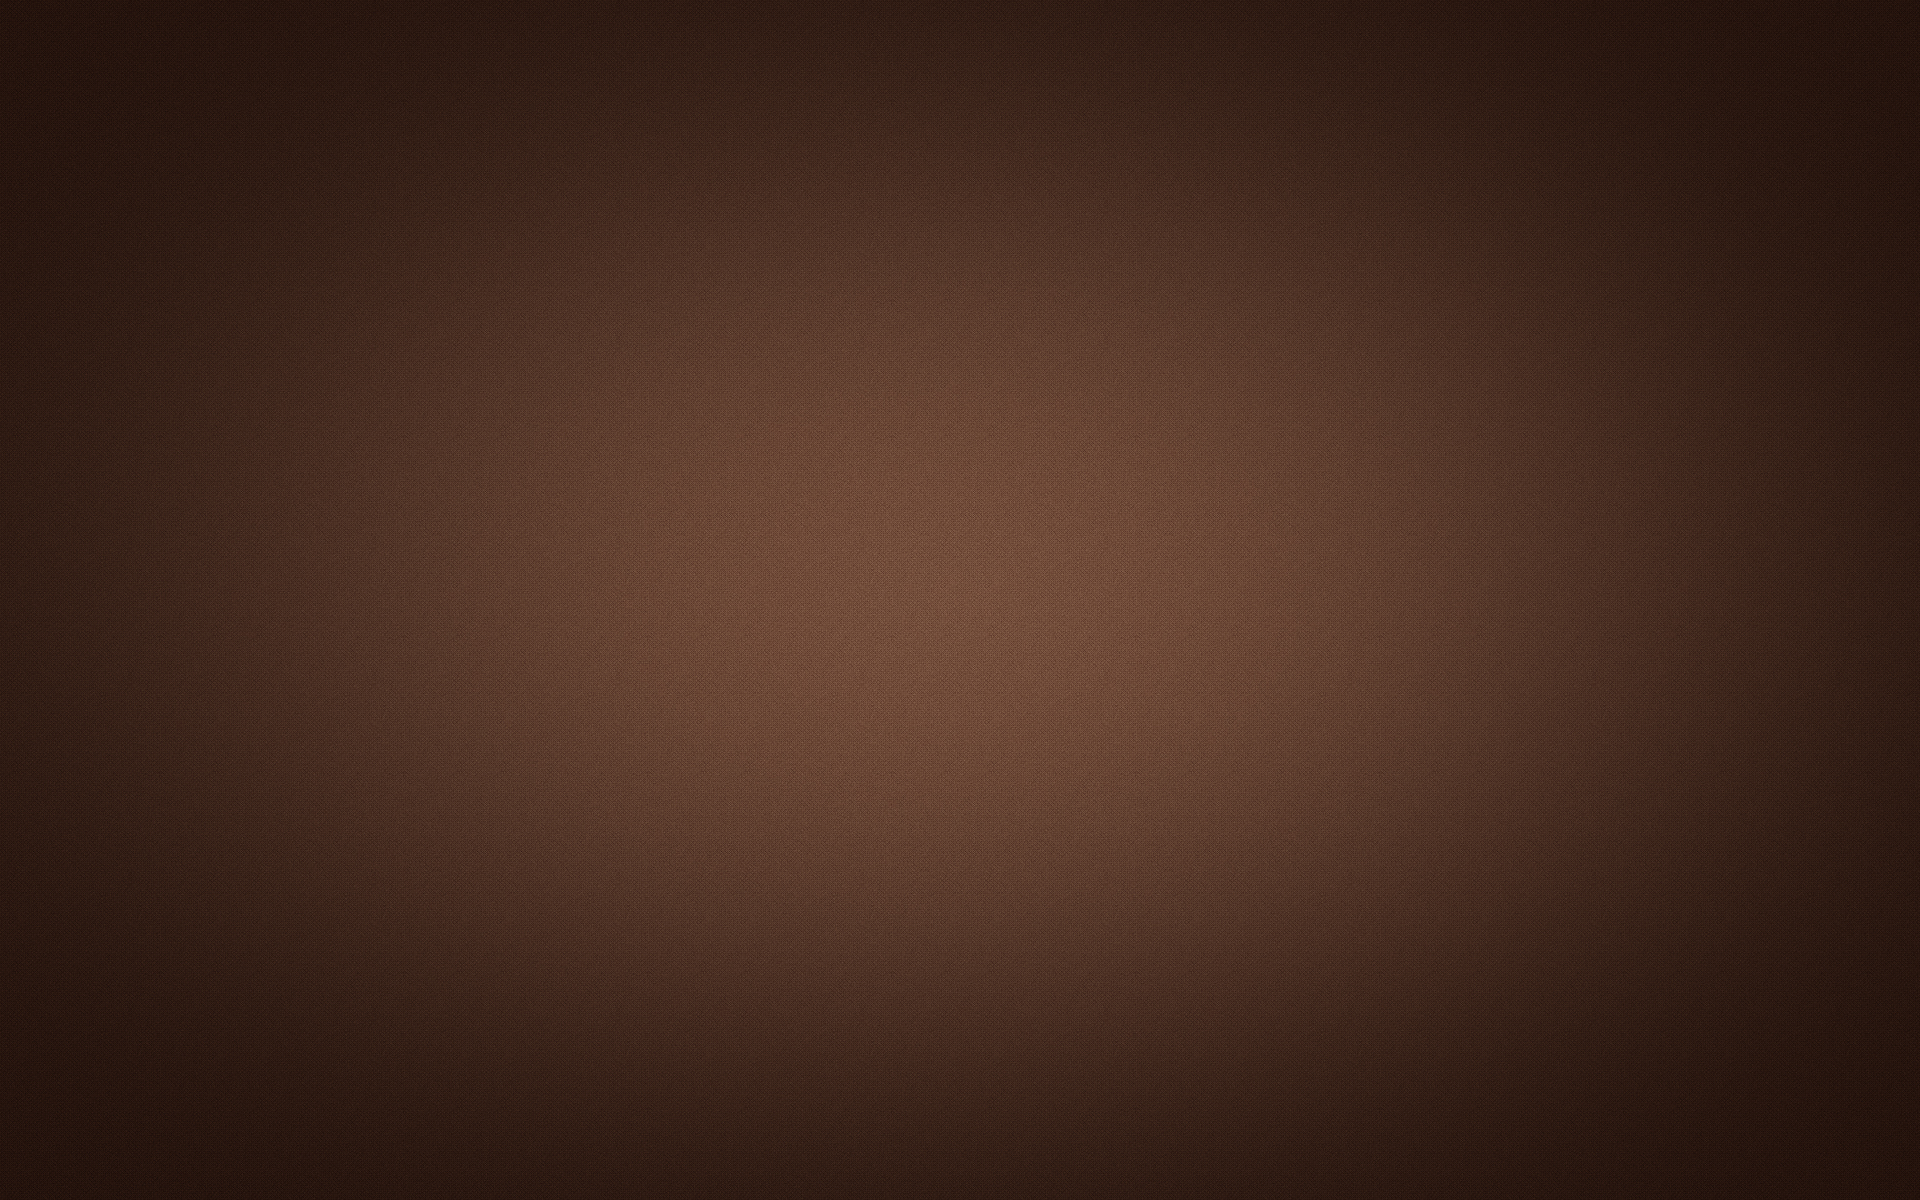 Color Brown Background Photo wallpapers HD   185975 1920x1200